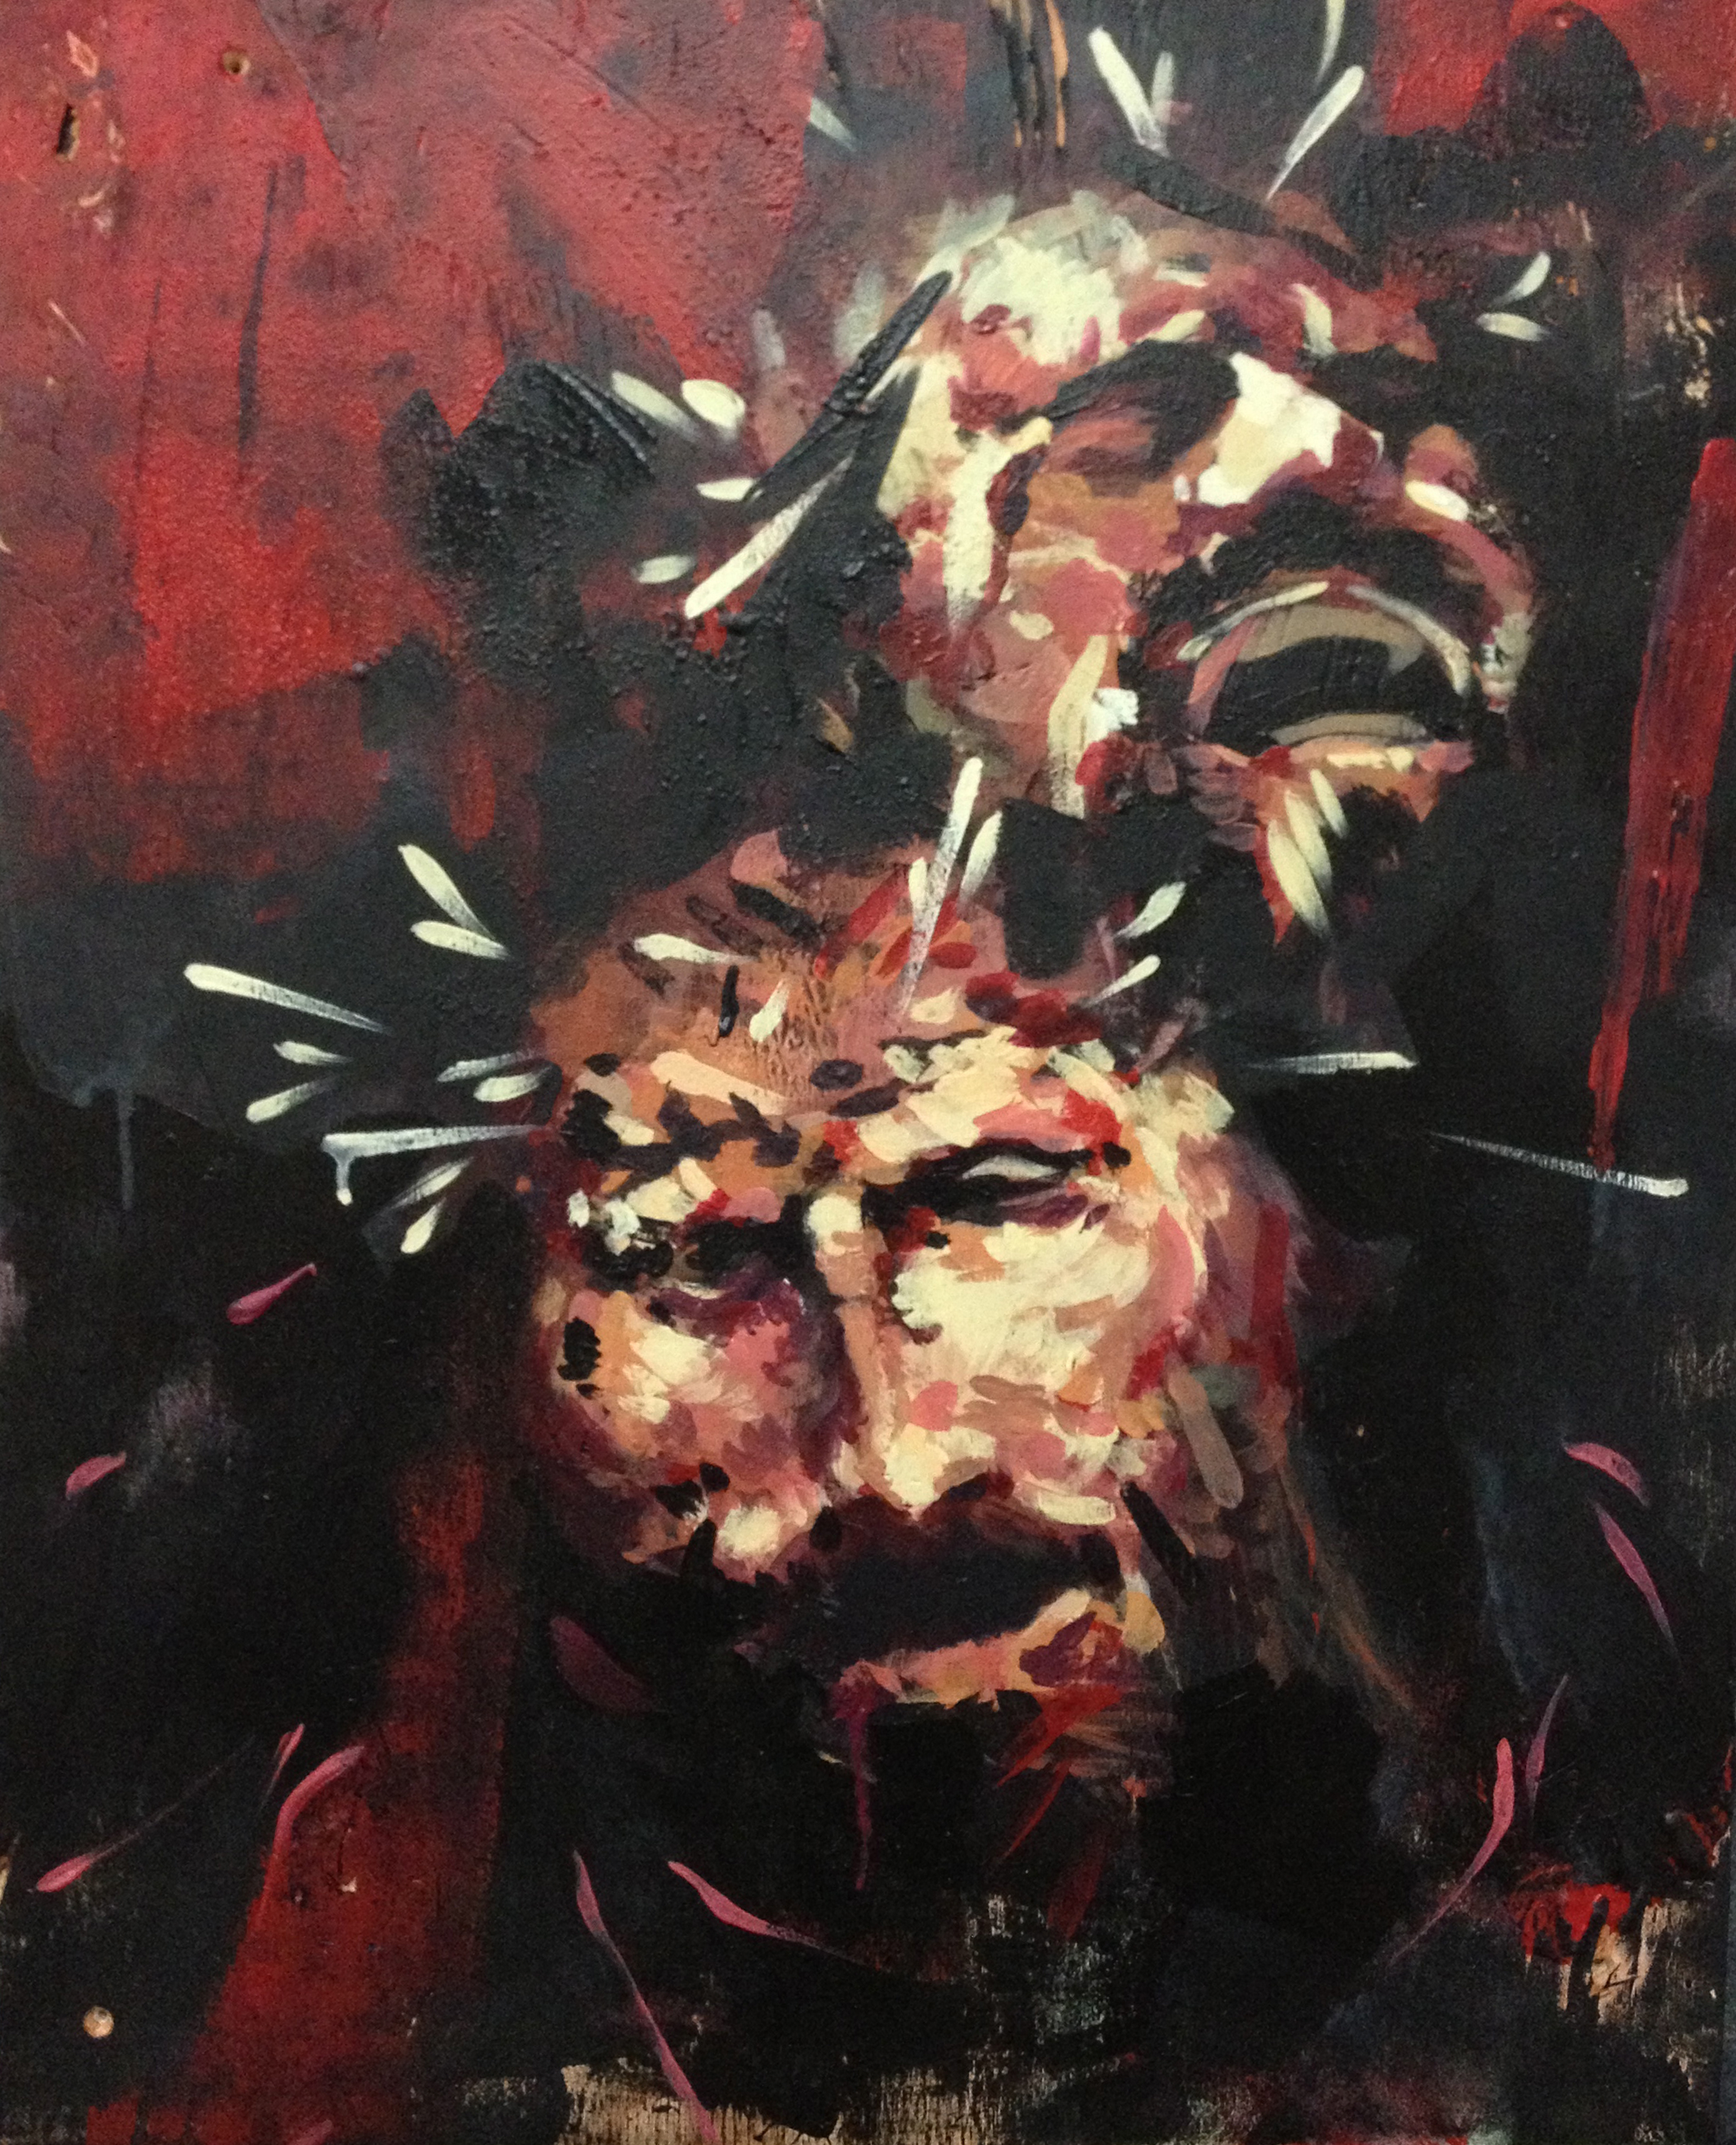 """Jesus on the Cross  2013 24"""" x 18""""  Acrylic on found wood  SOLD"""